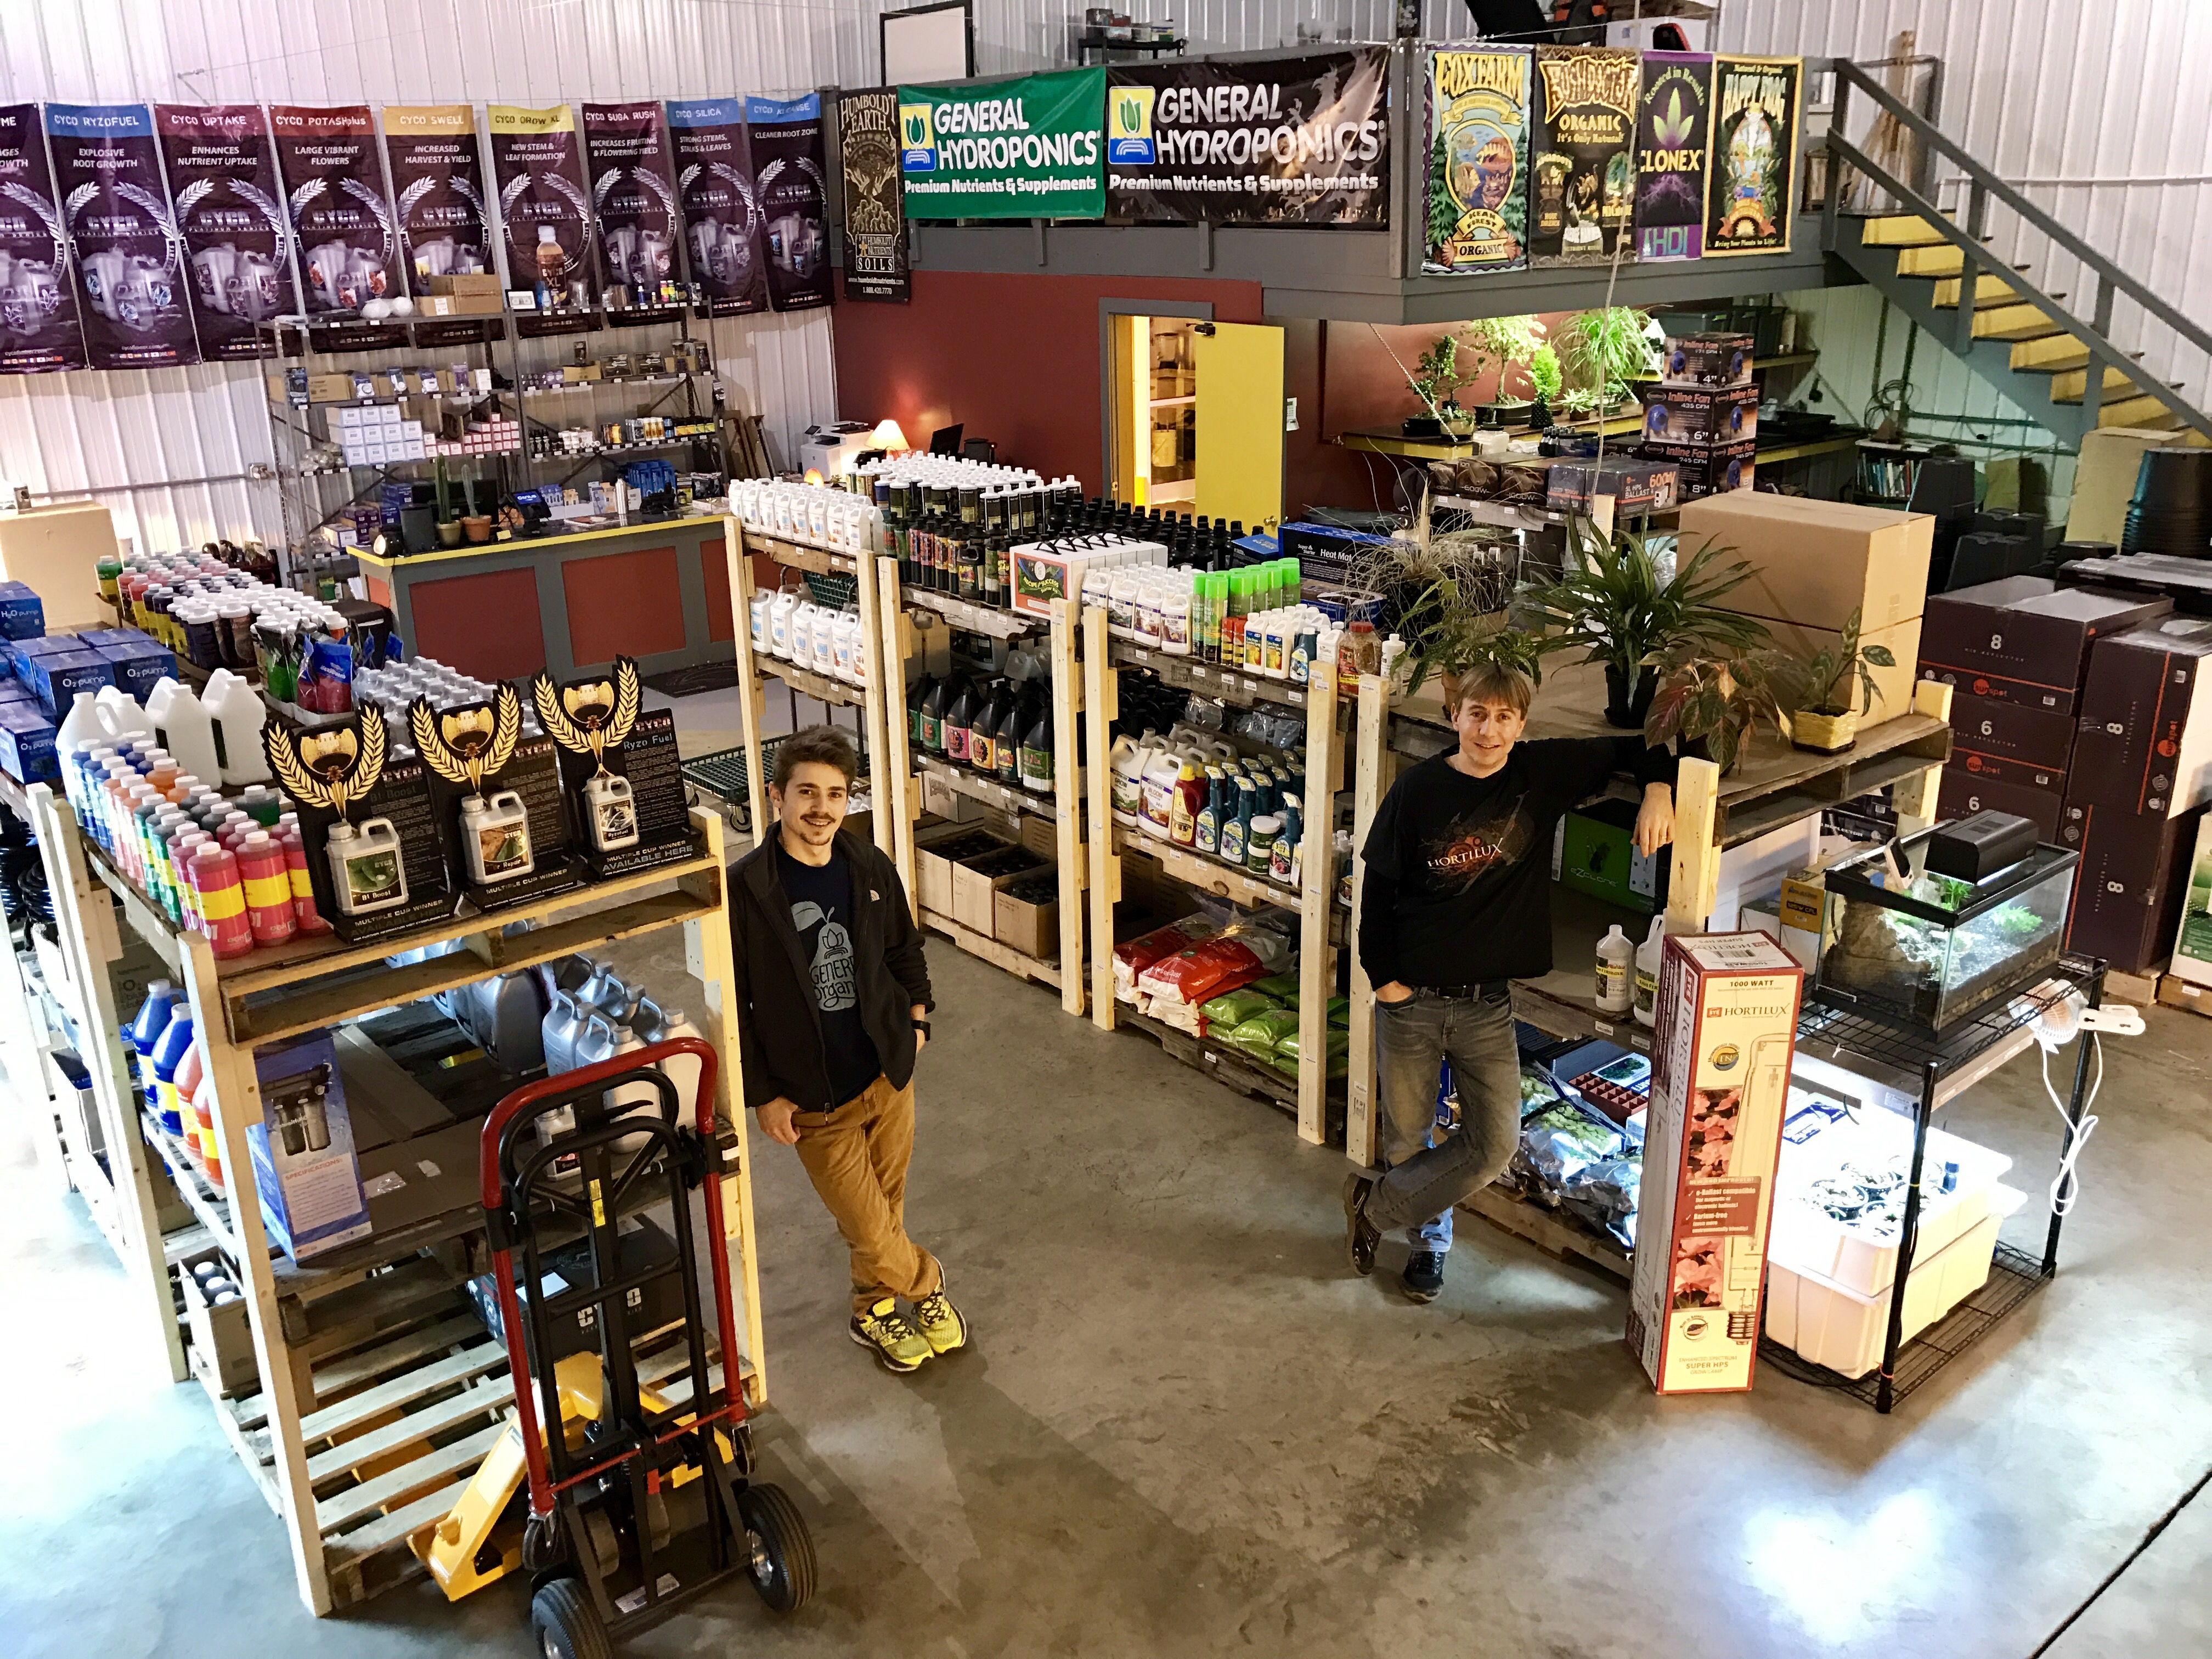 Indiana Hydroponics and Garden Supply Store - Goldleaf Hydro